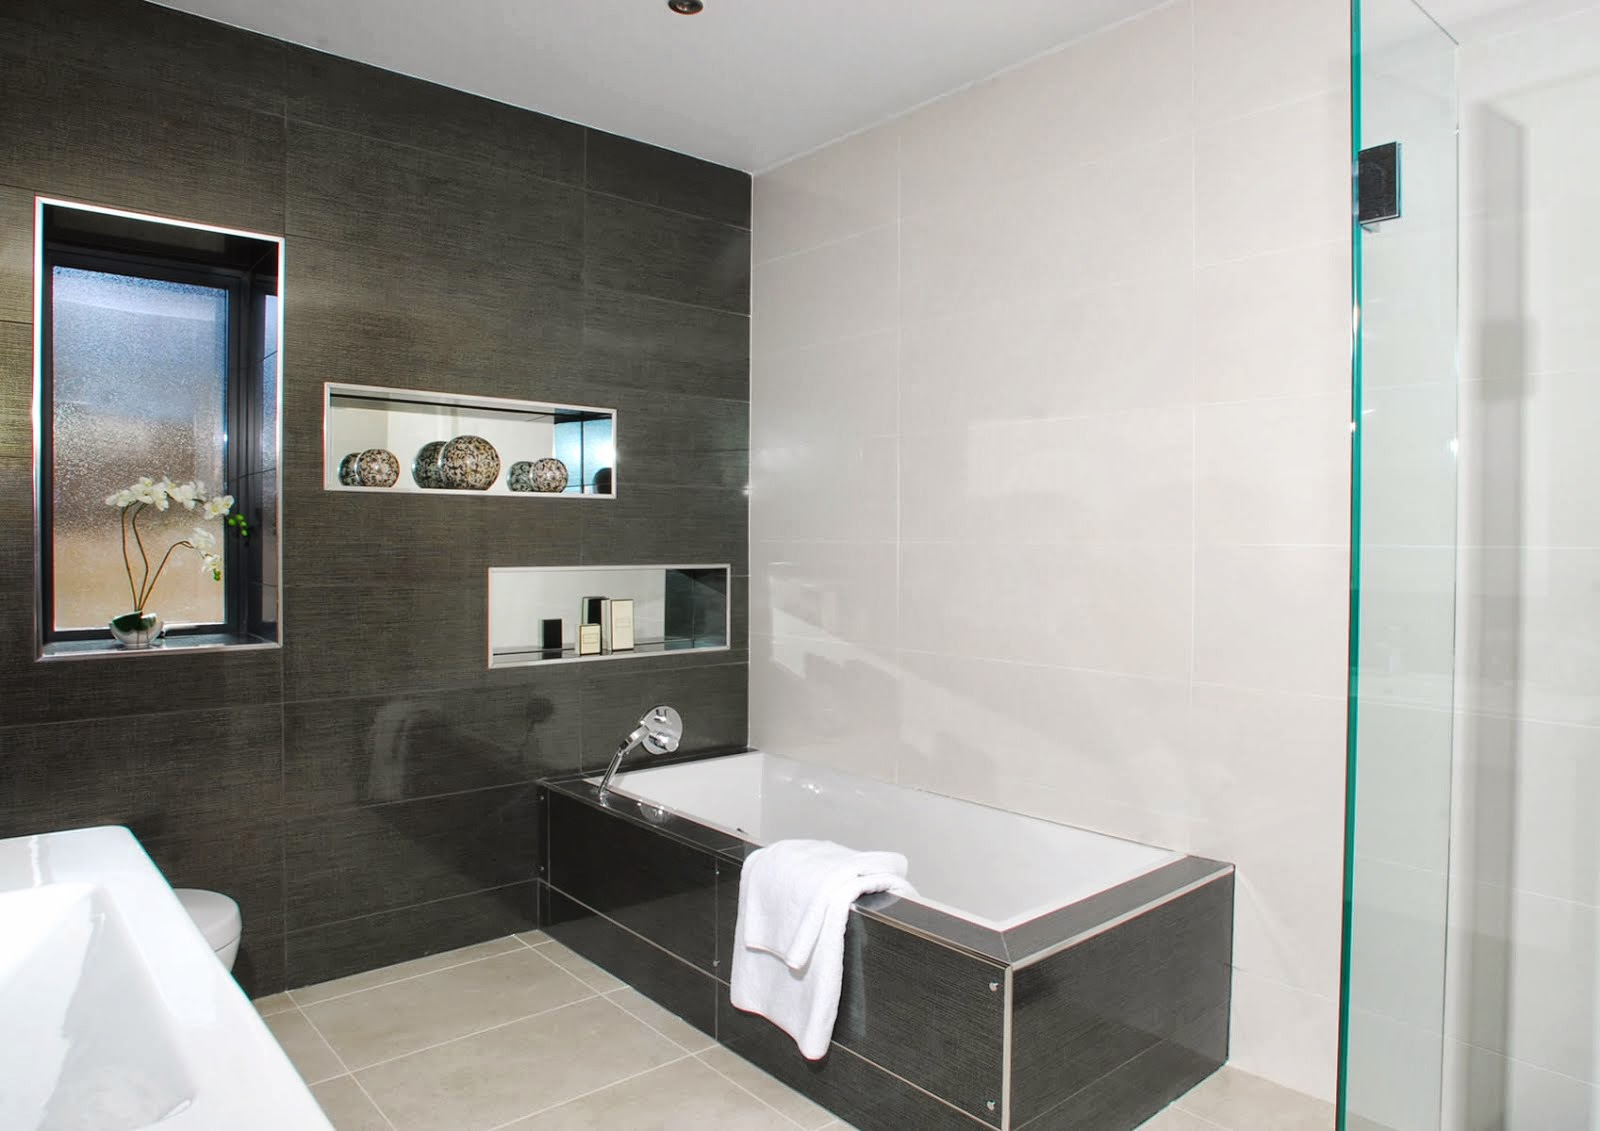 Bathroom design ideas uk for Bathroom styles images